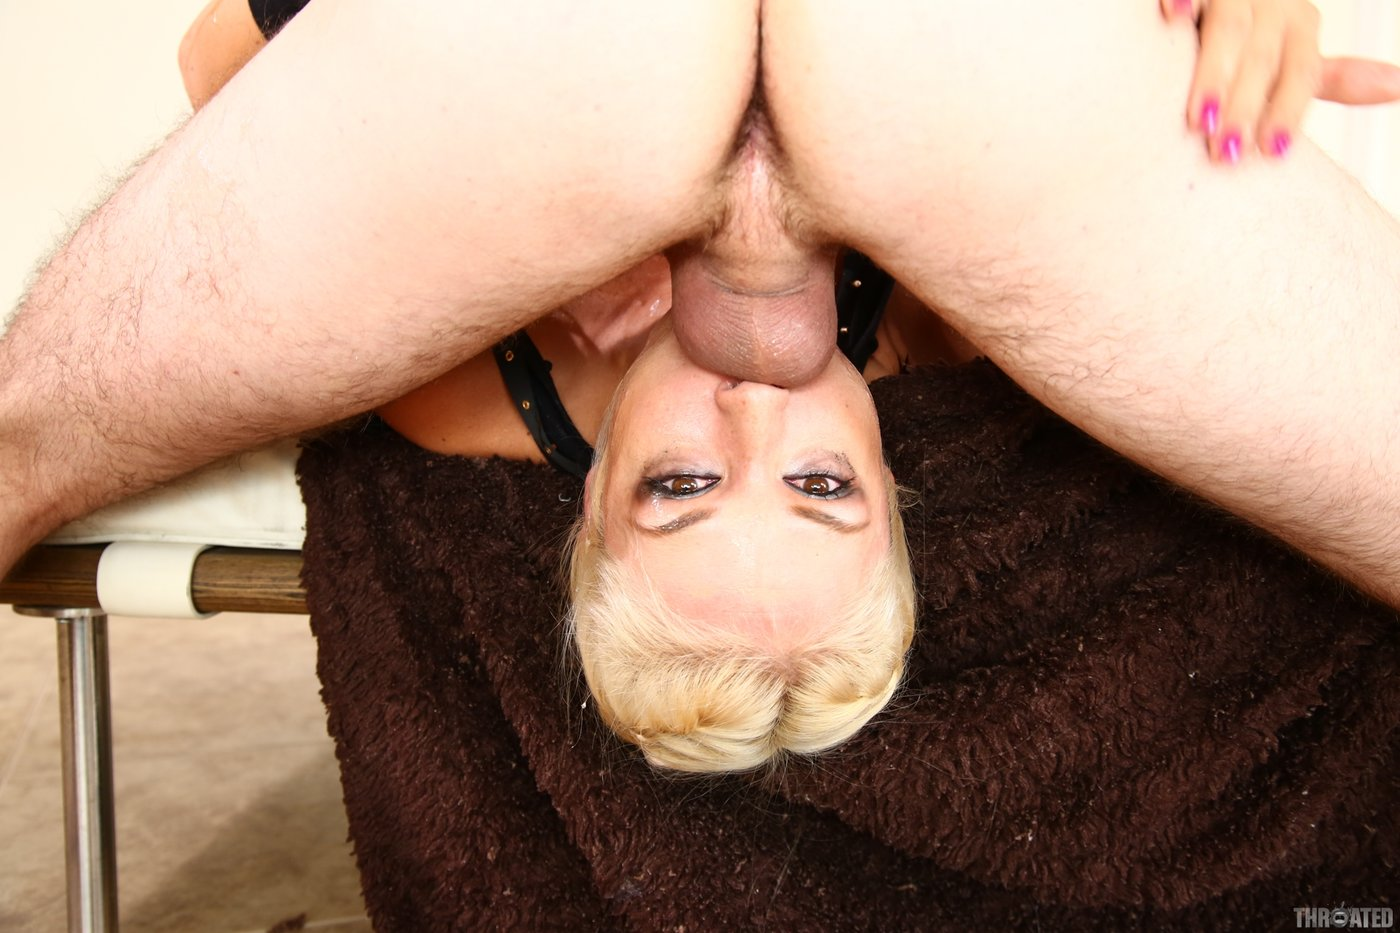 fucked upside down